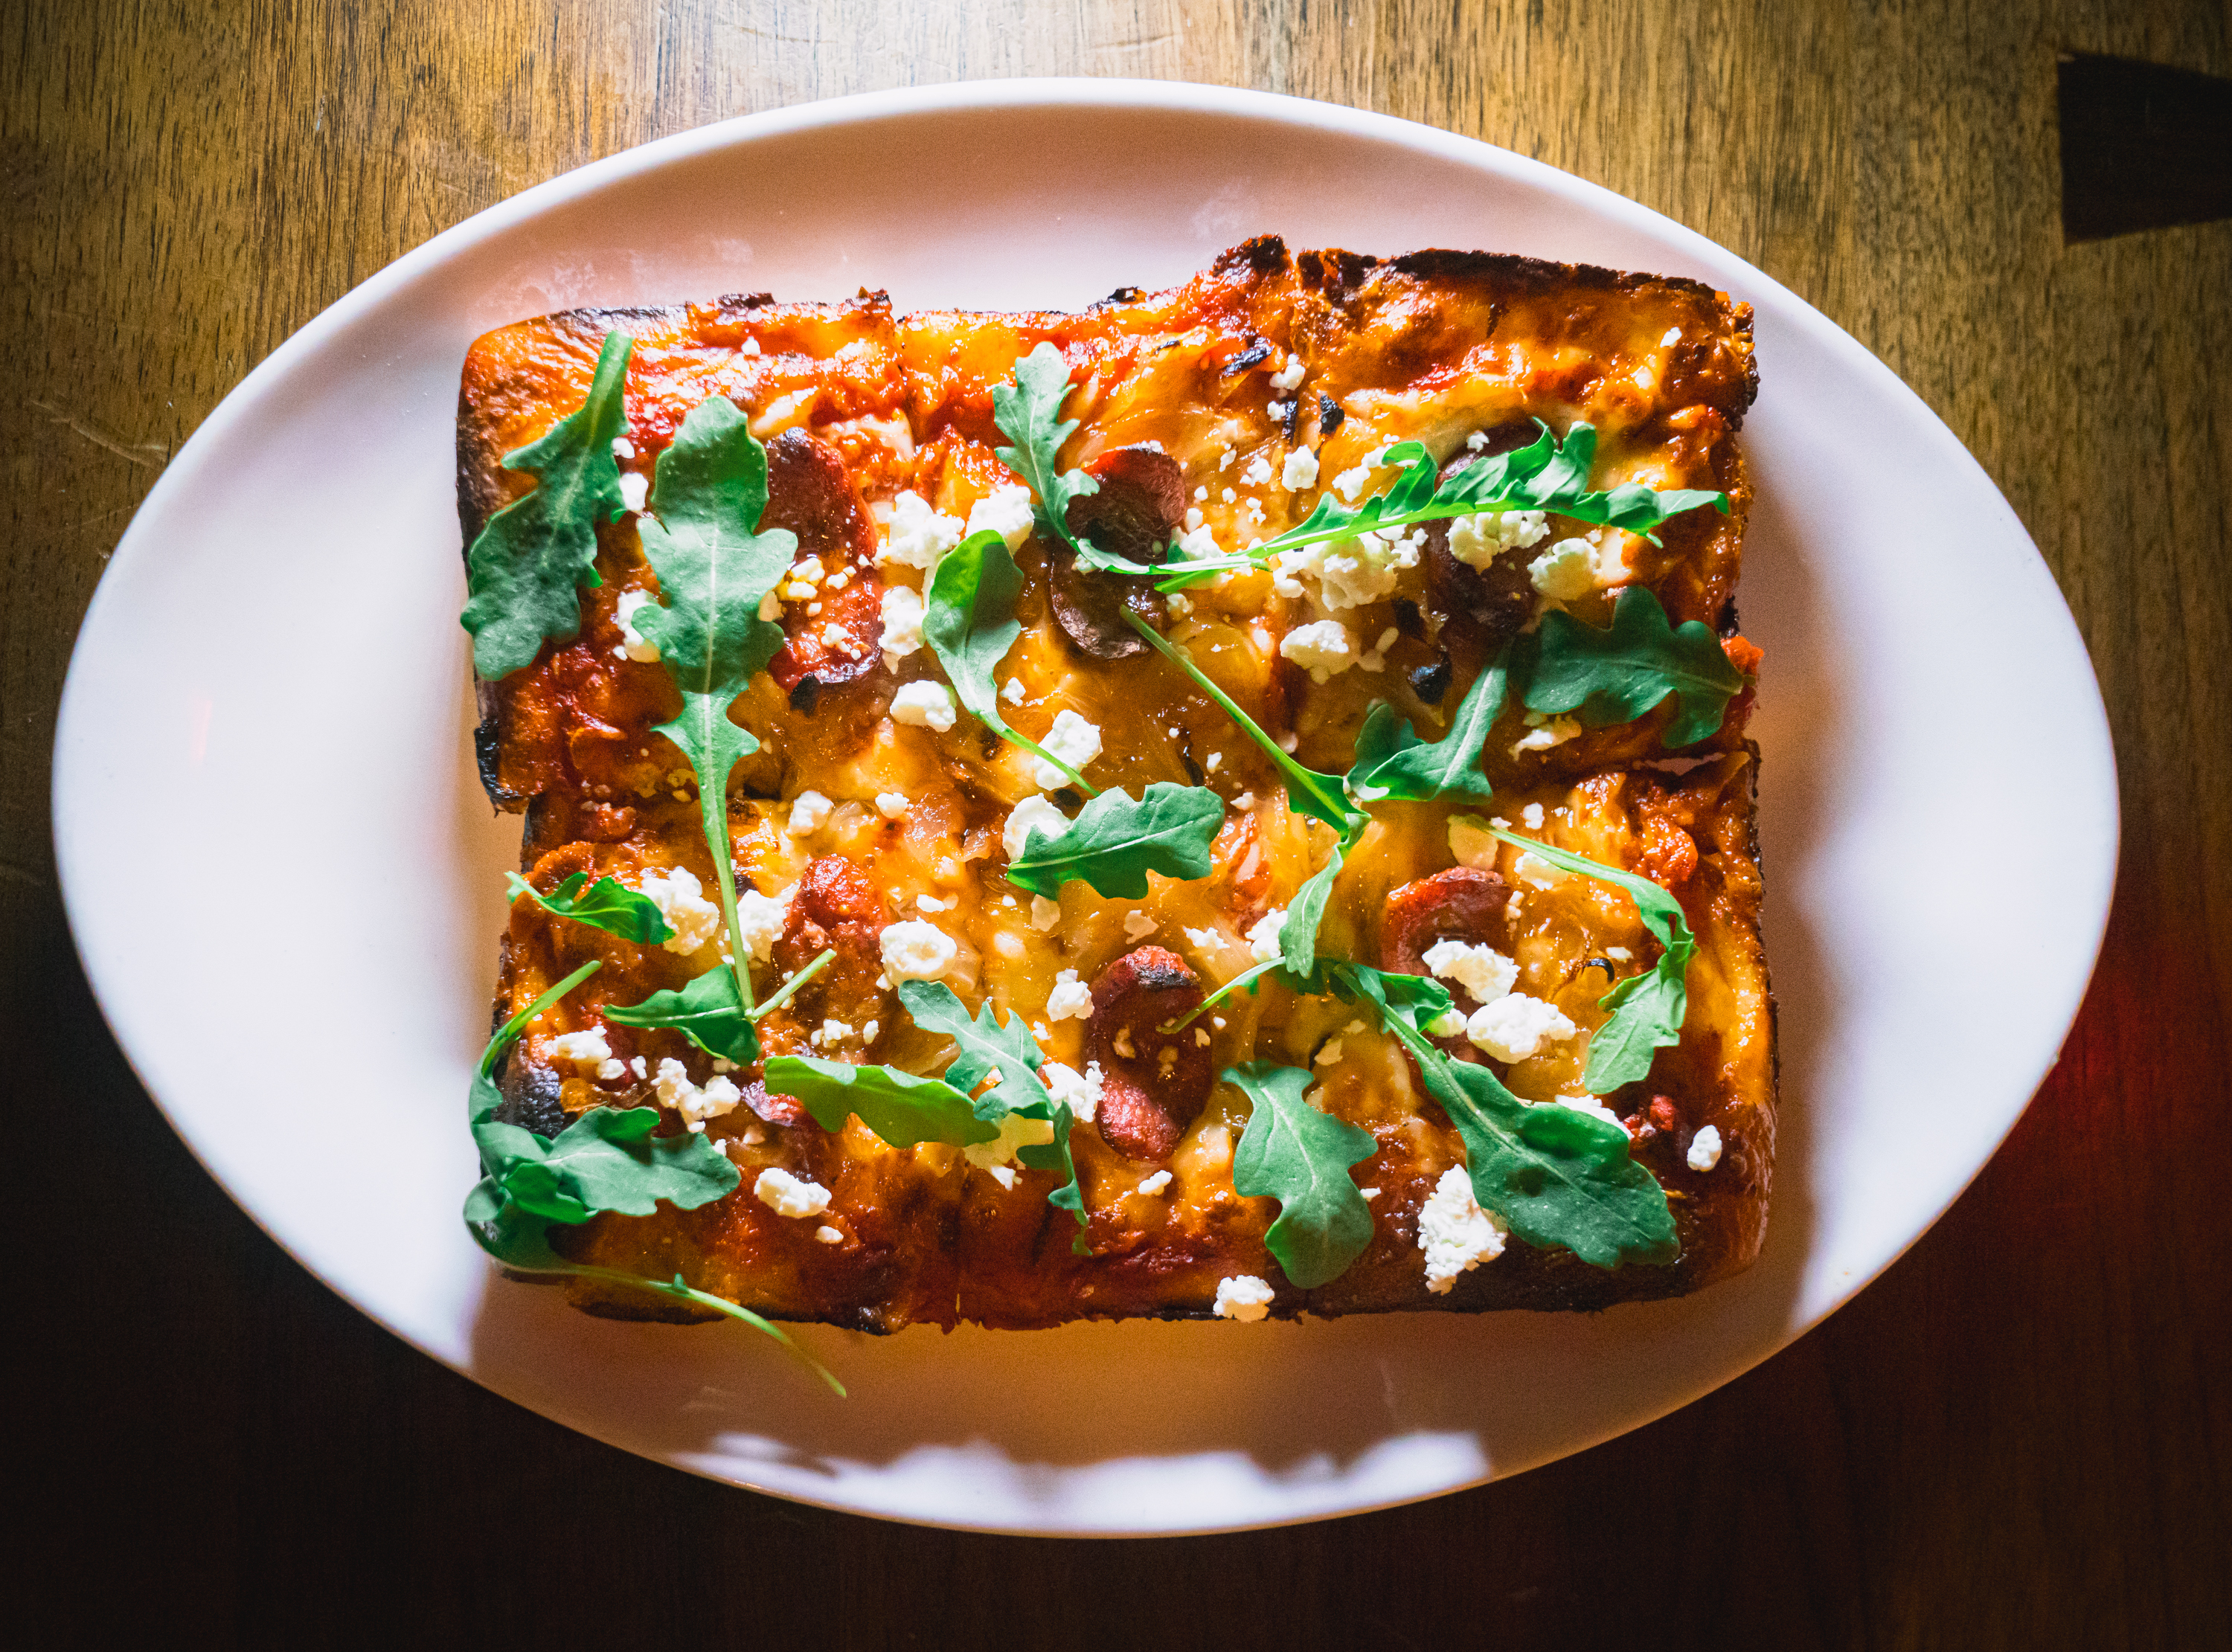 Get Social's Half Smoked Goat pizza gets topped with half-smoke slices, caramelized onion, goat cheese, and arugula